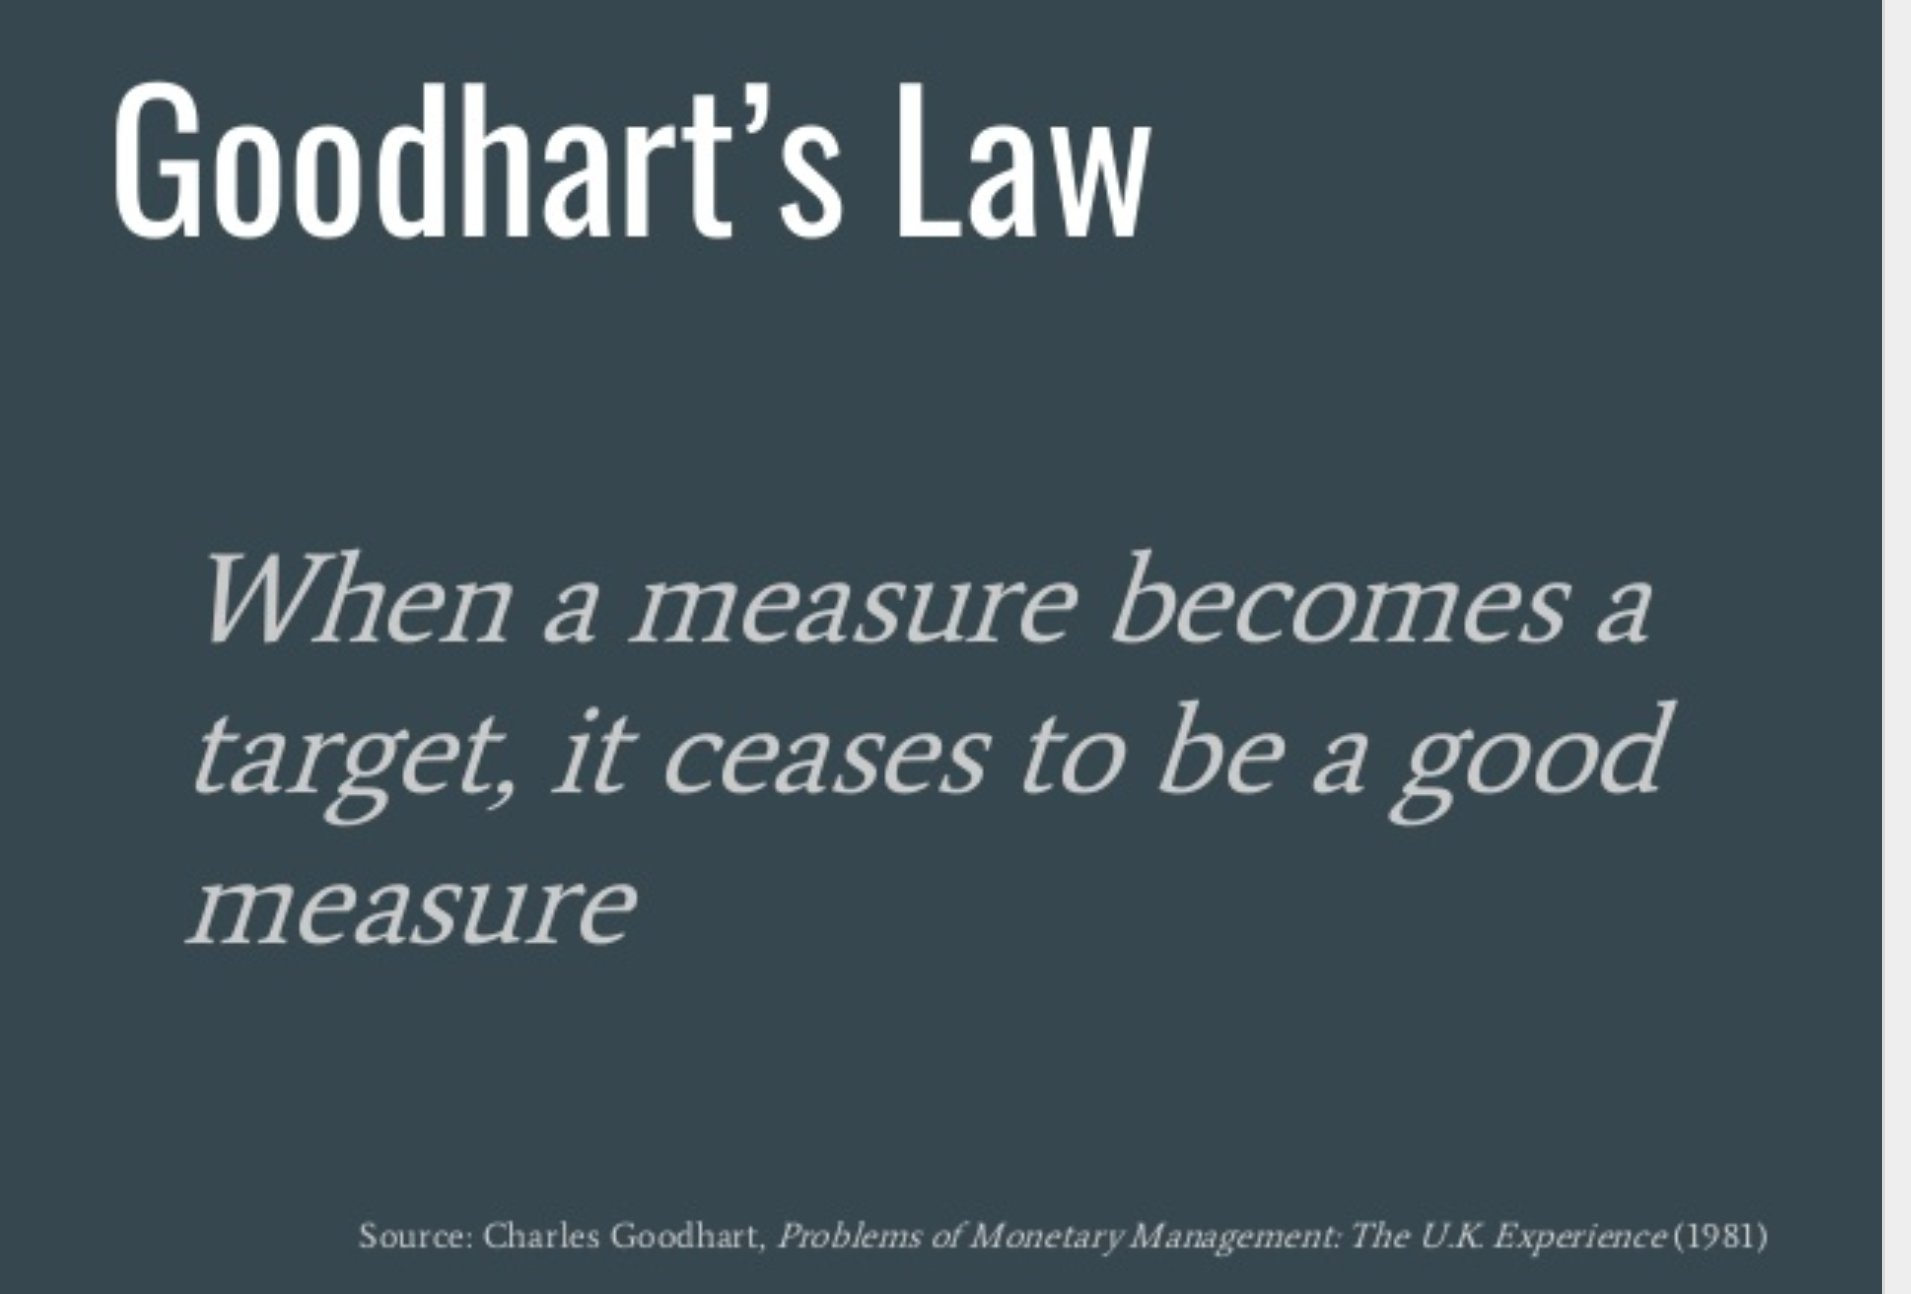 """When a measure becomes a target, it ceases to be a good measure."""